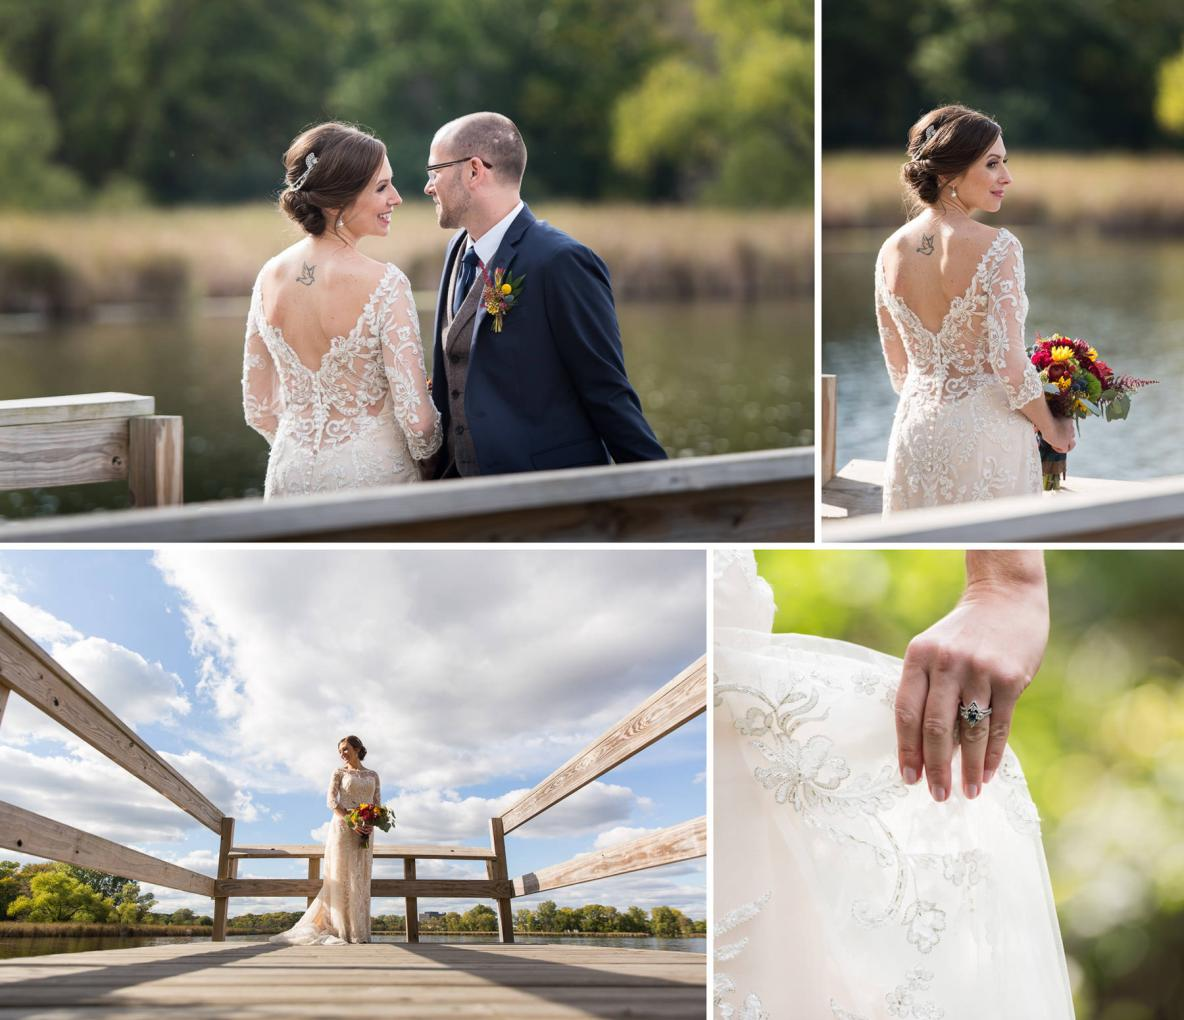 Bride and groom photos outside in nature with lake and blue sky in background.